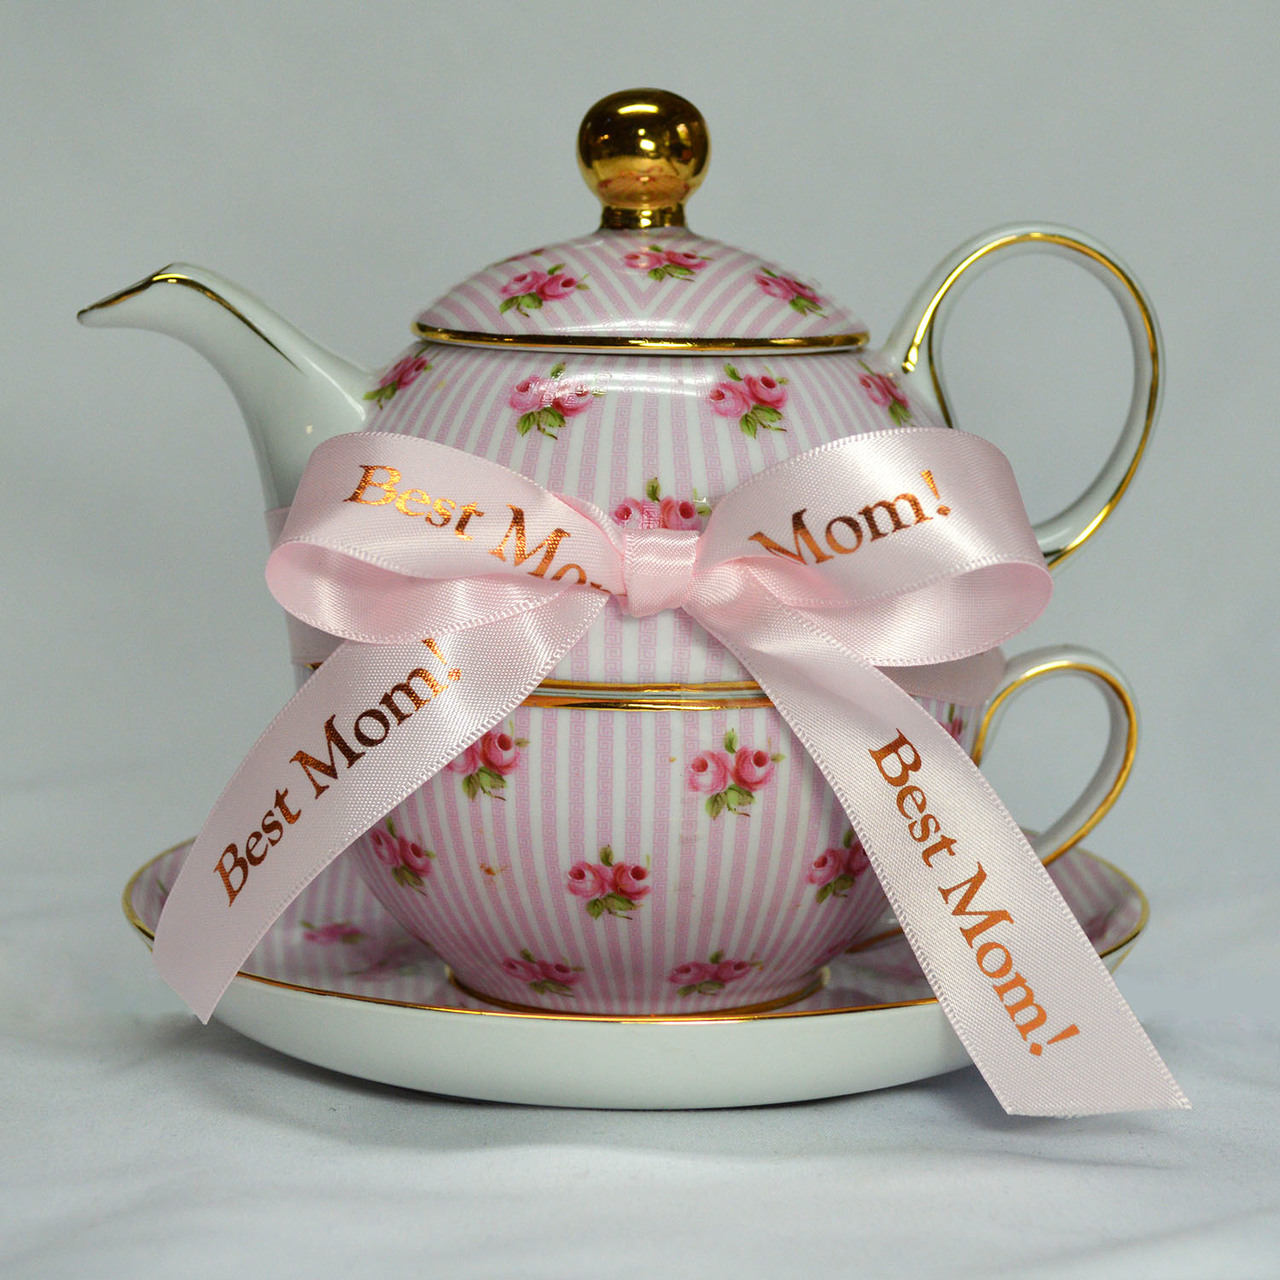 Check Out this teapot!  Shout Out who is the Best Mom with ribbon made just for her!